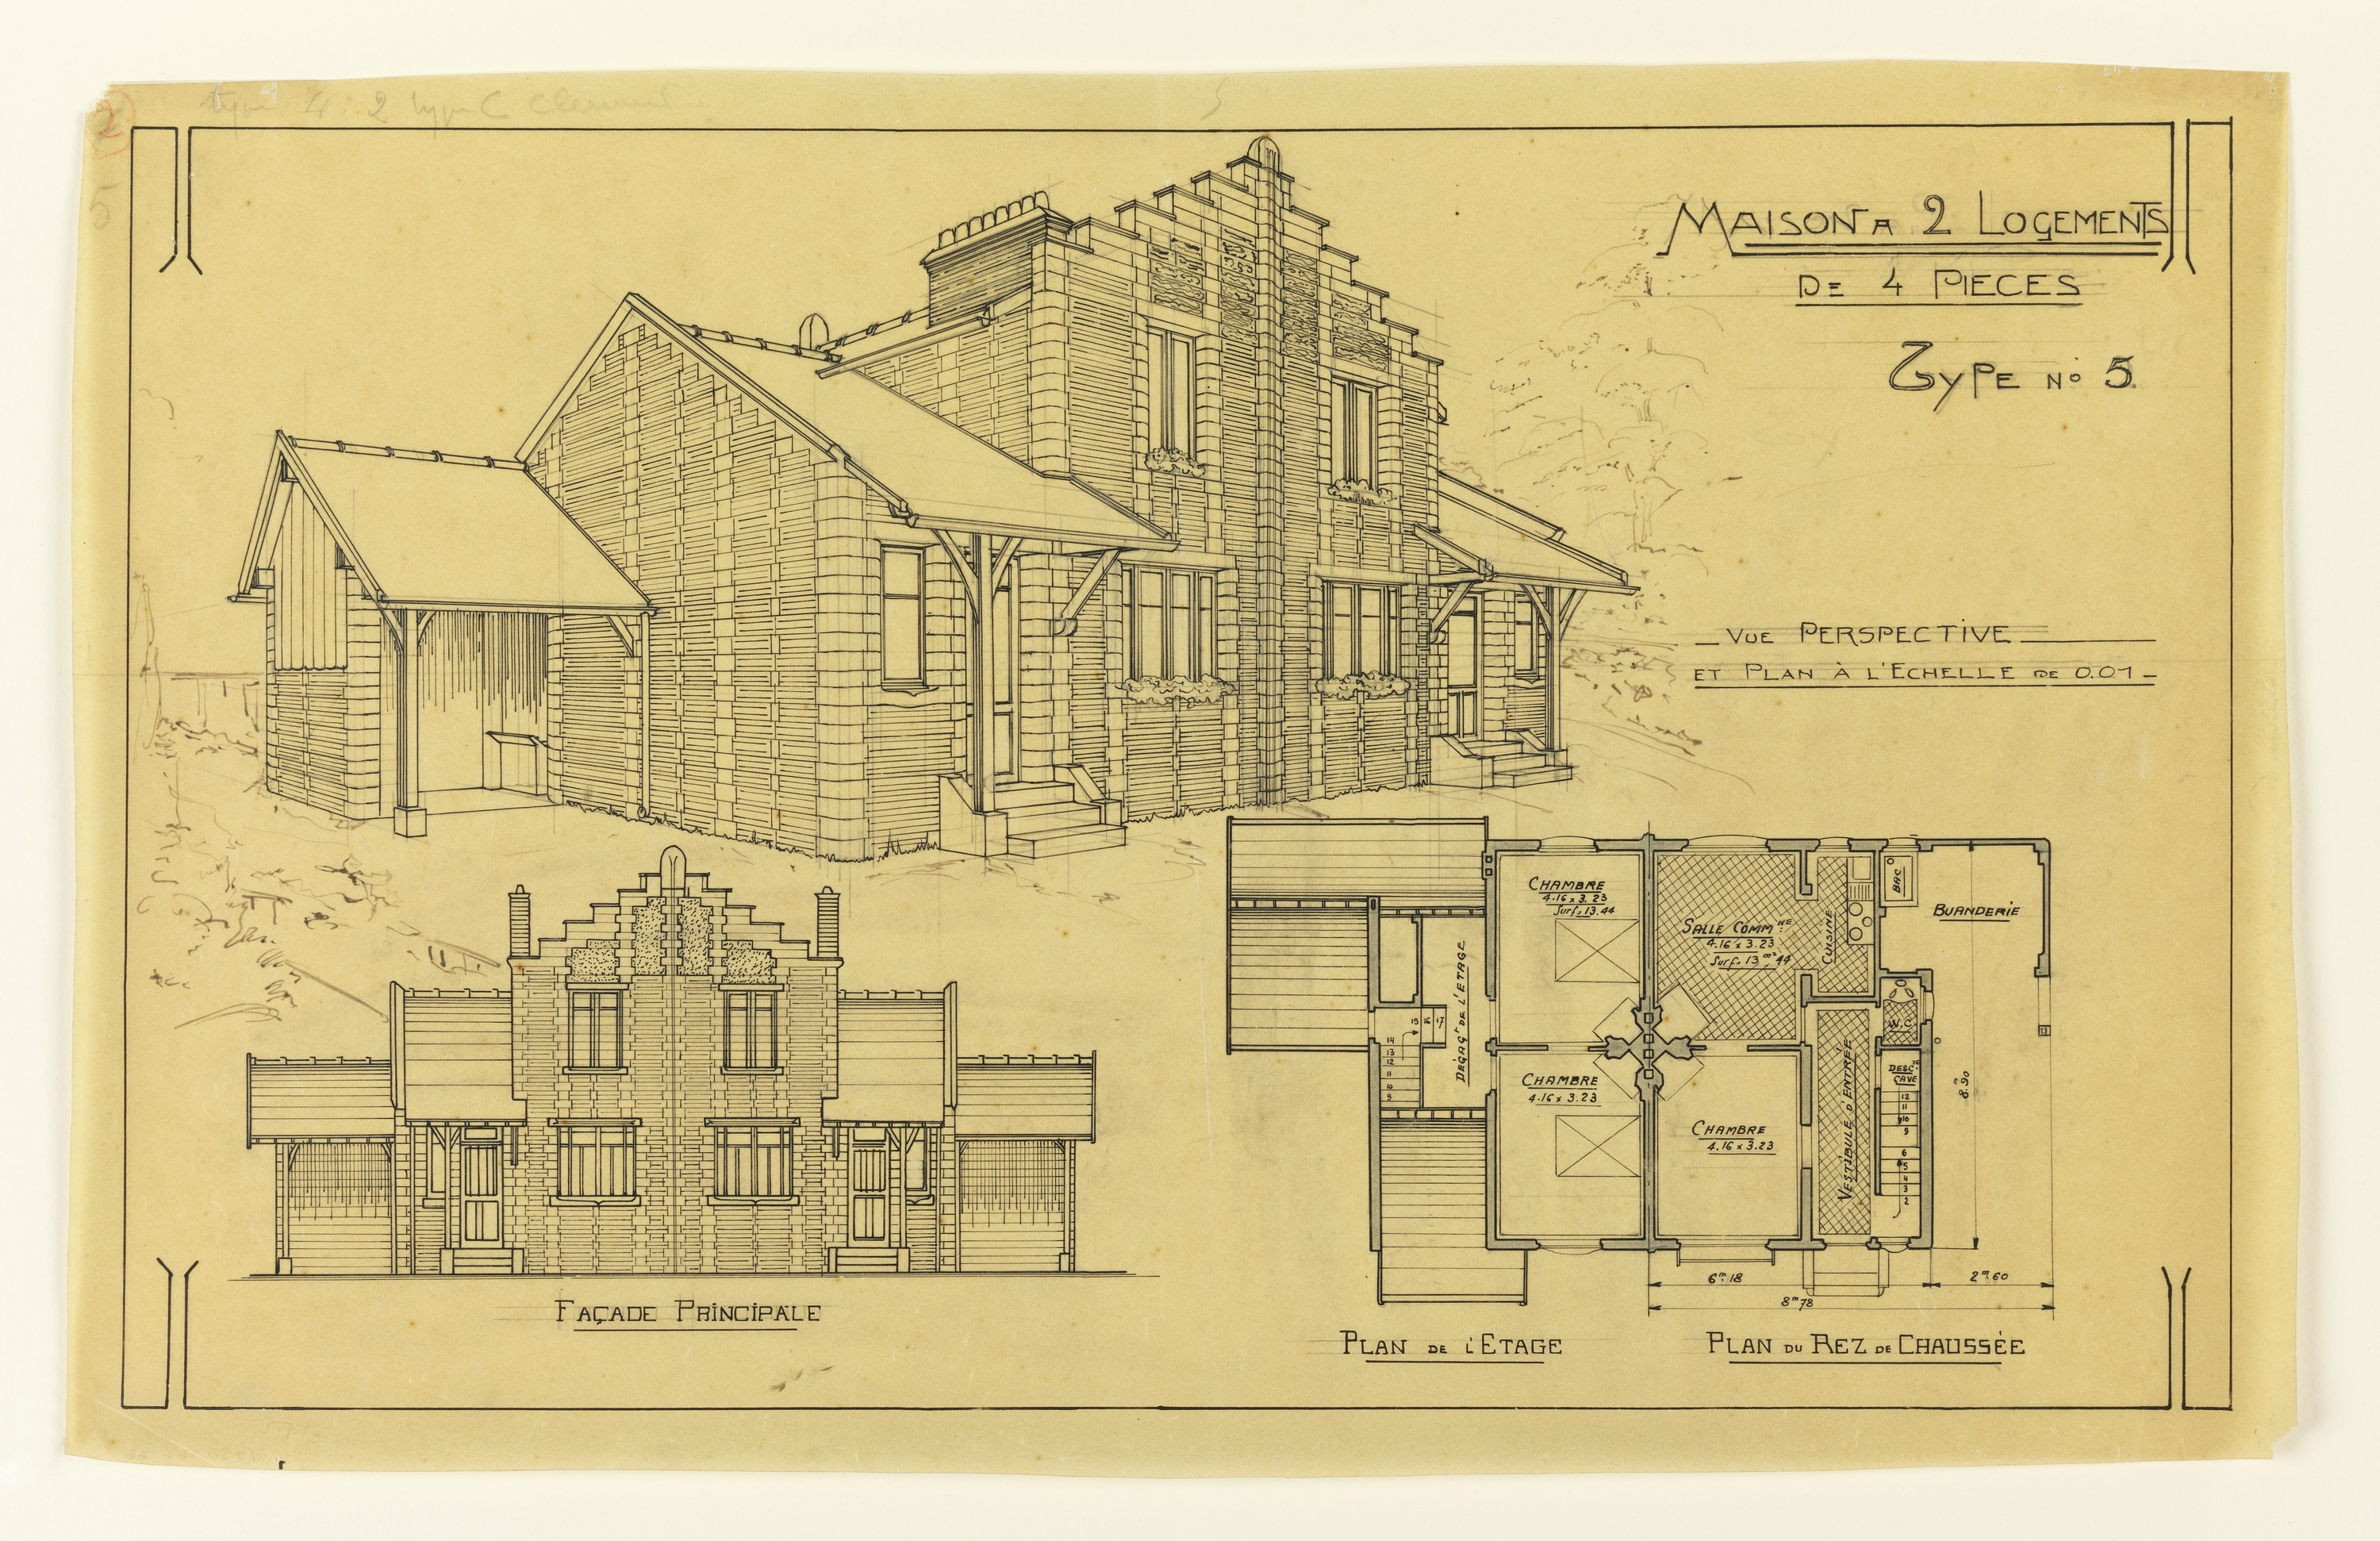 Drawing Two Elevations and Floor Plan of a Two Family Mass